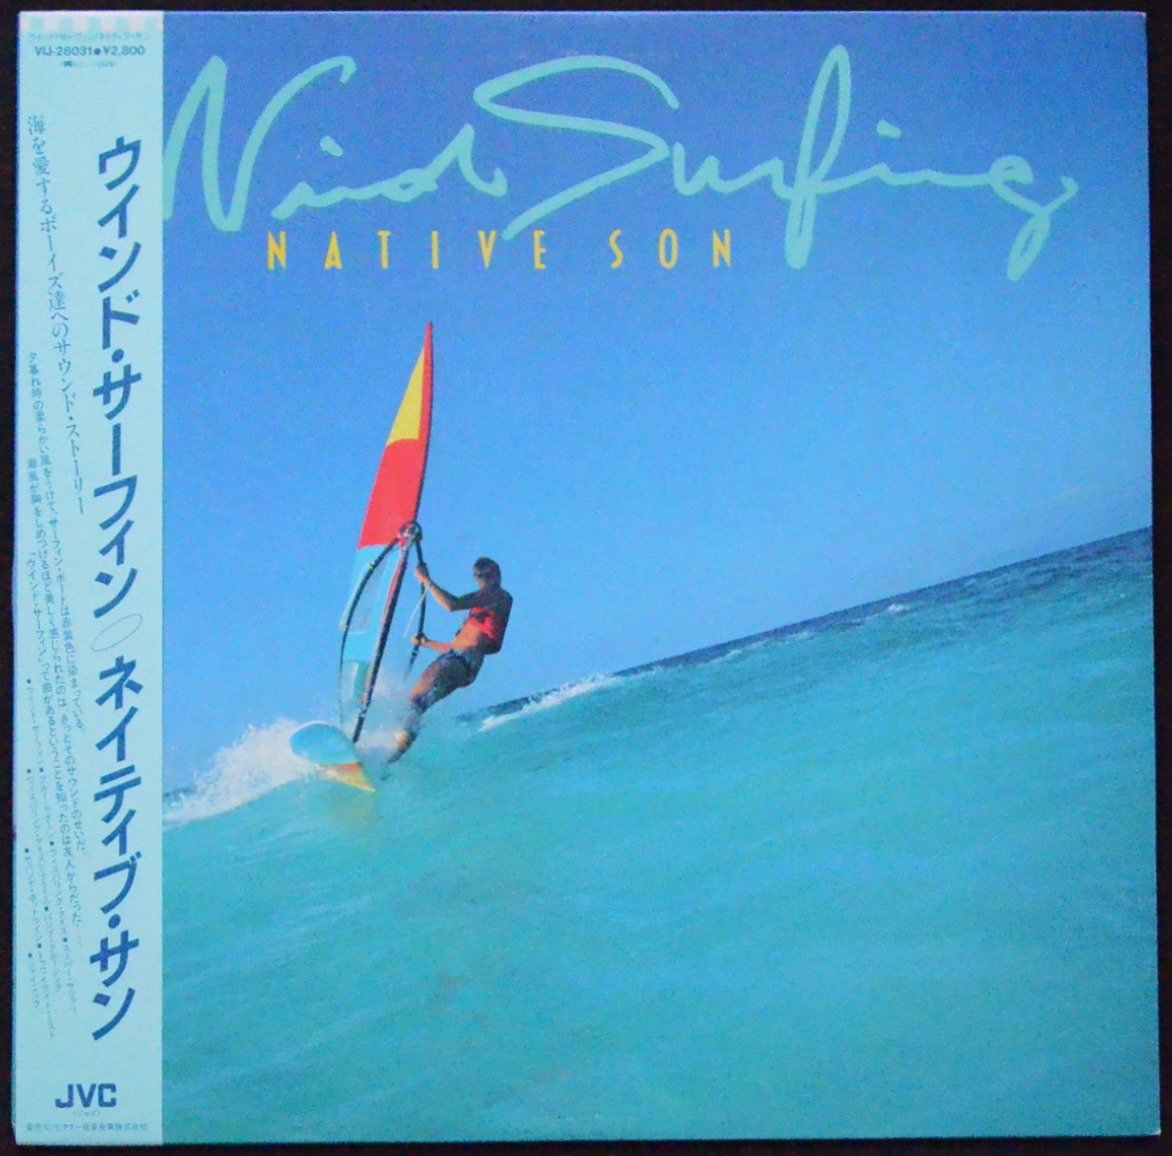 NATIVE SON ネイティブ・サン / ウインド・サーフィン WIND SURFING (LP)